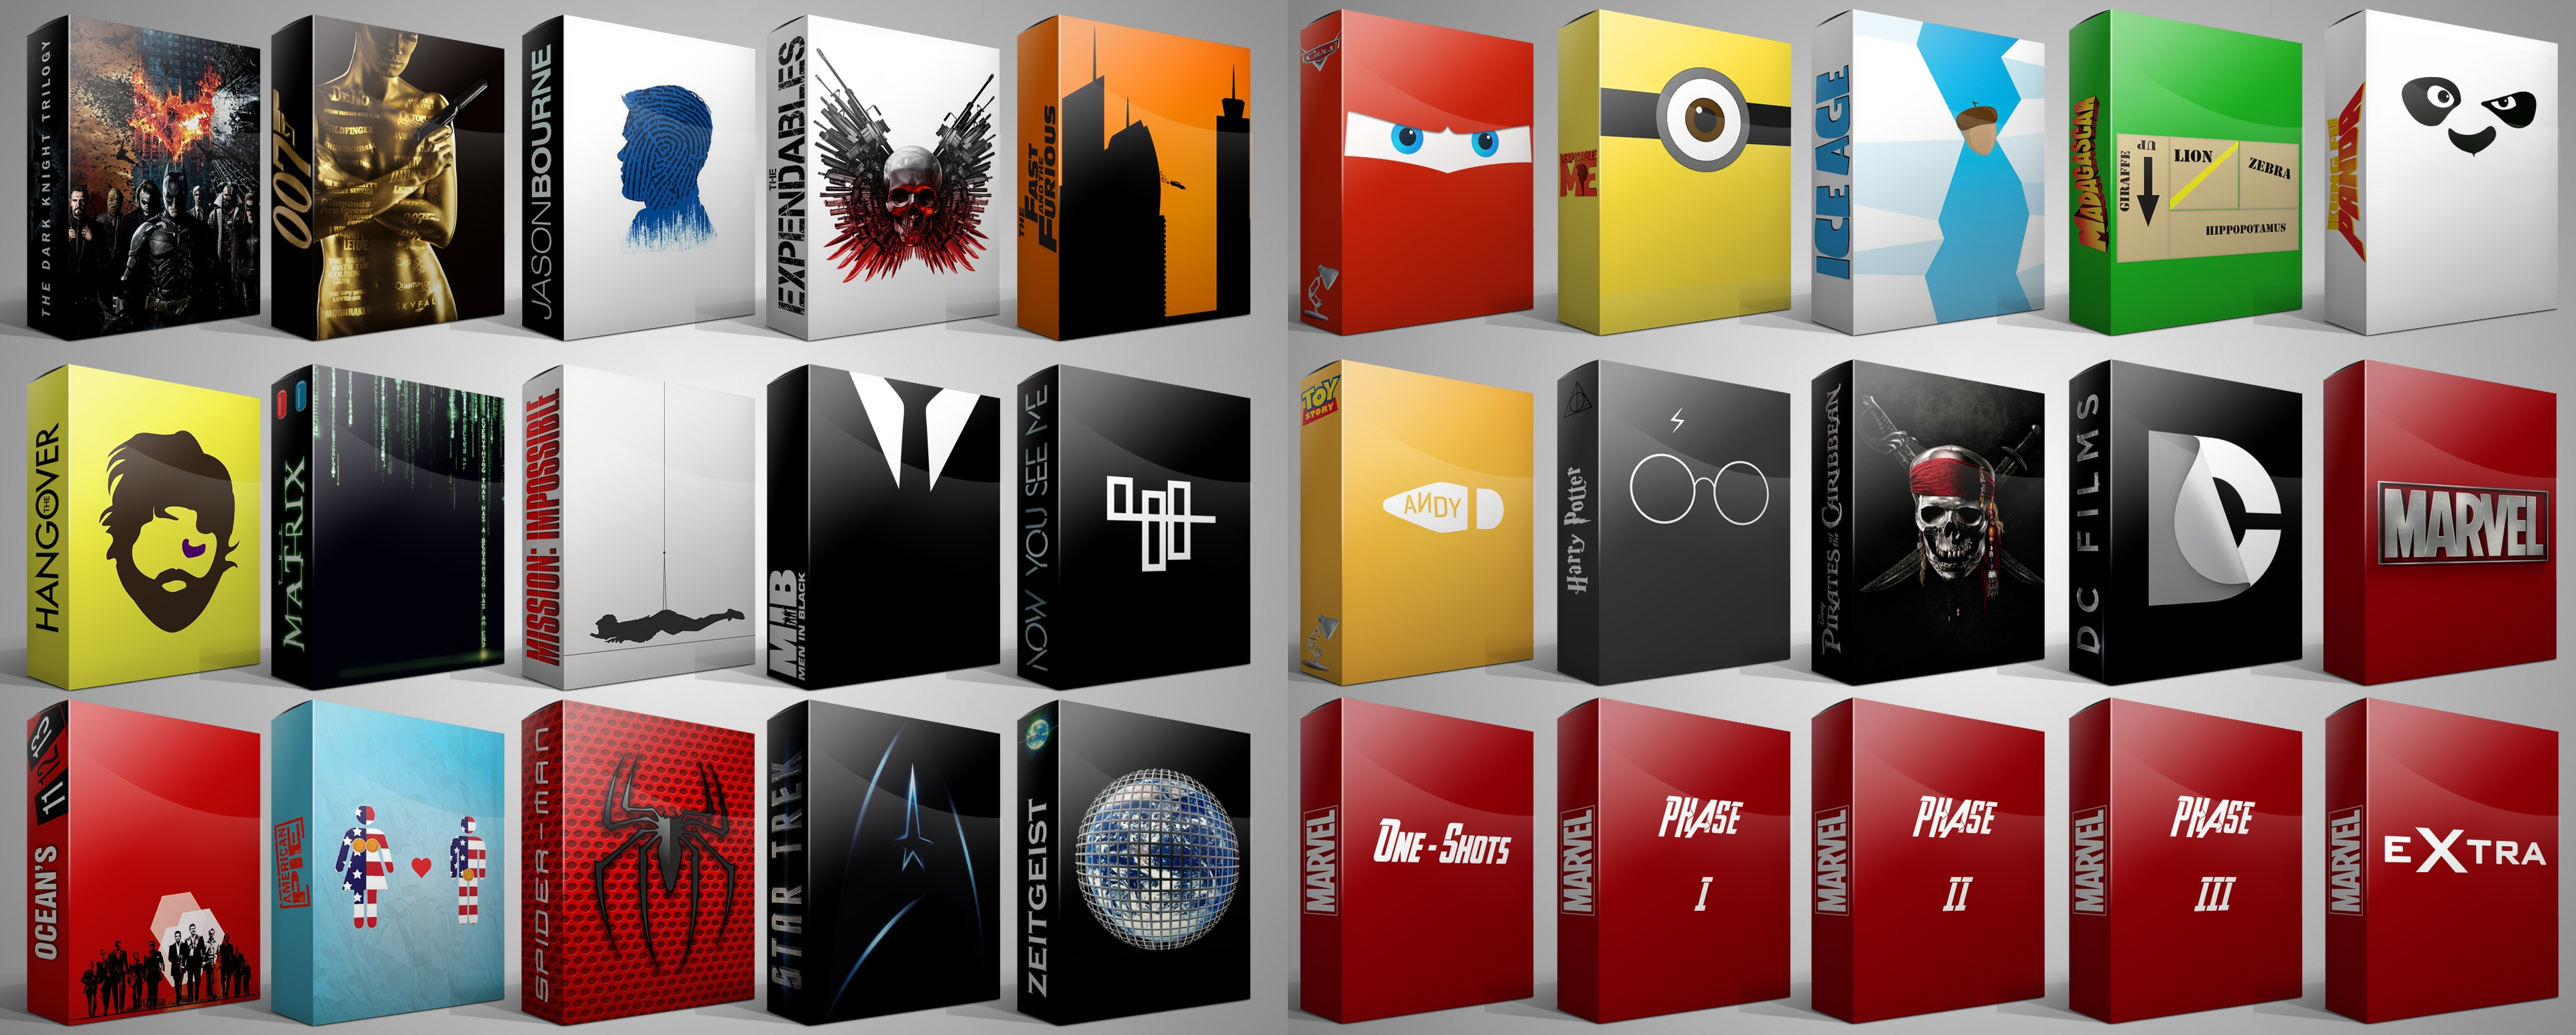 The Fast And The Furious Cars Wallpaper Collection Movies Series Box Set Folder Icons By Drac 69 On Deviantart